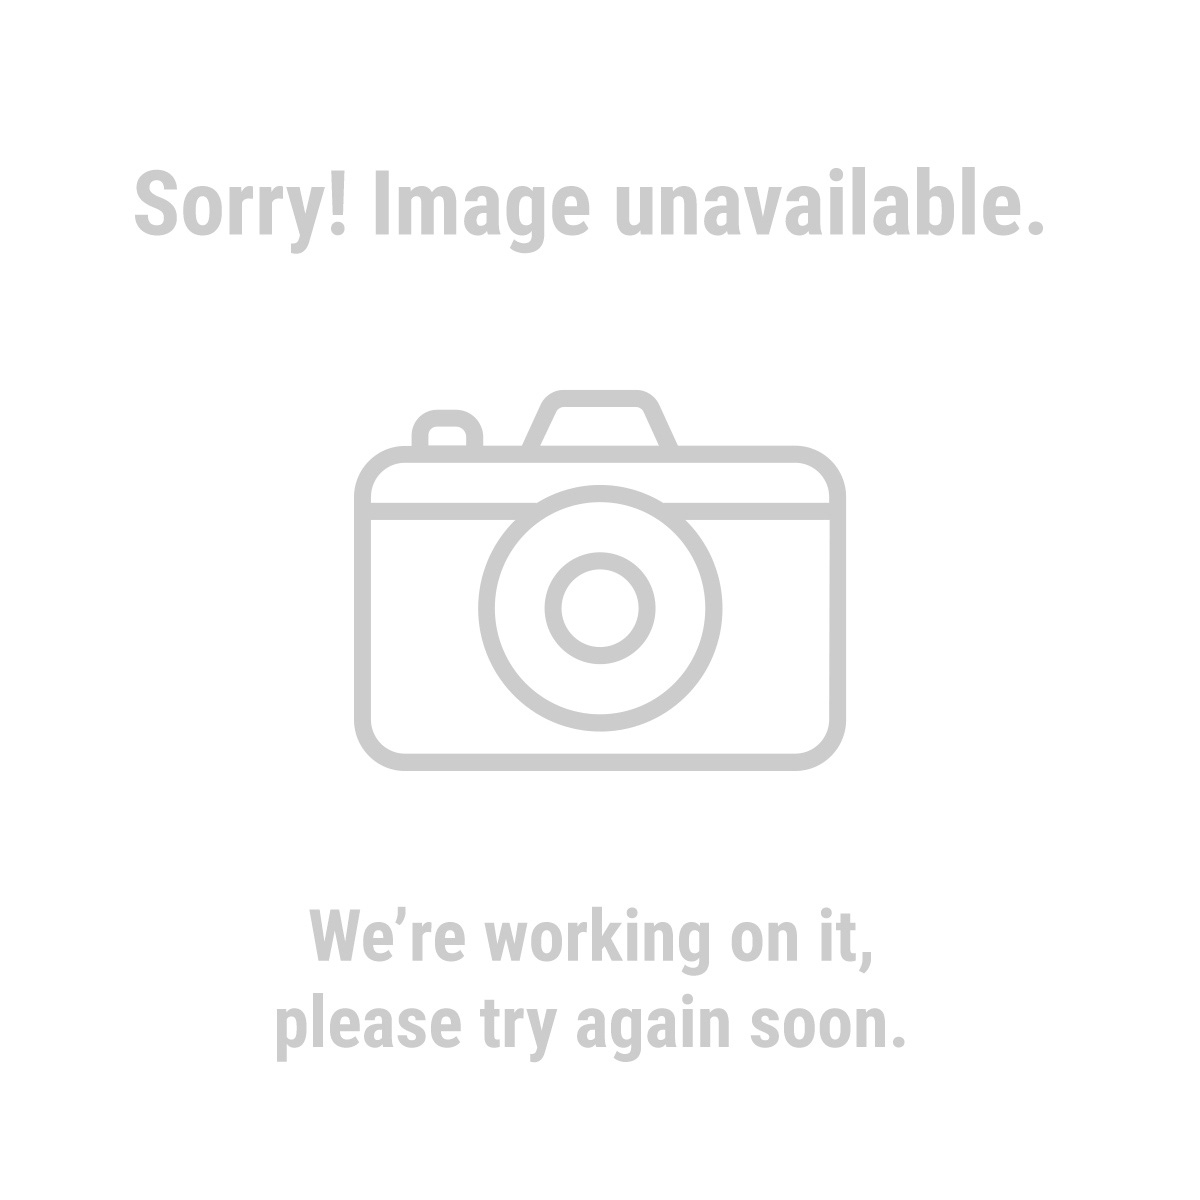 Haul-Master® 60731 Capacity Pickup Truck Crane with Cable Winch